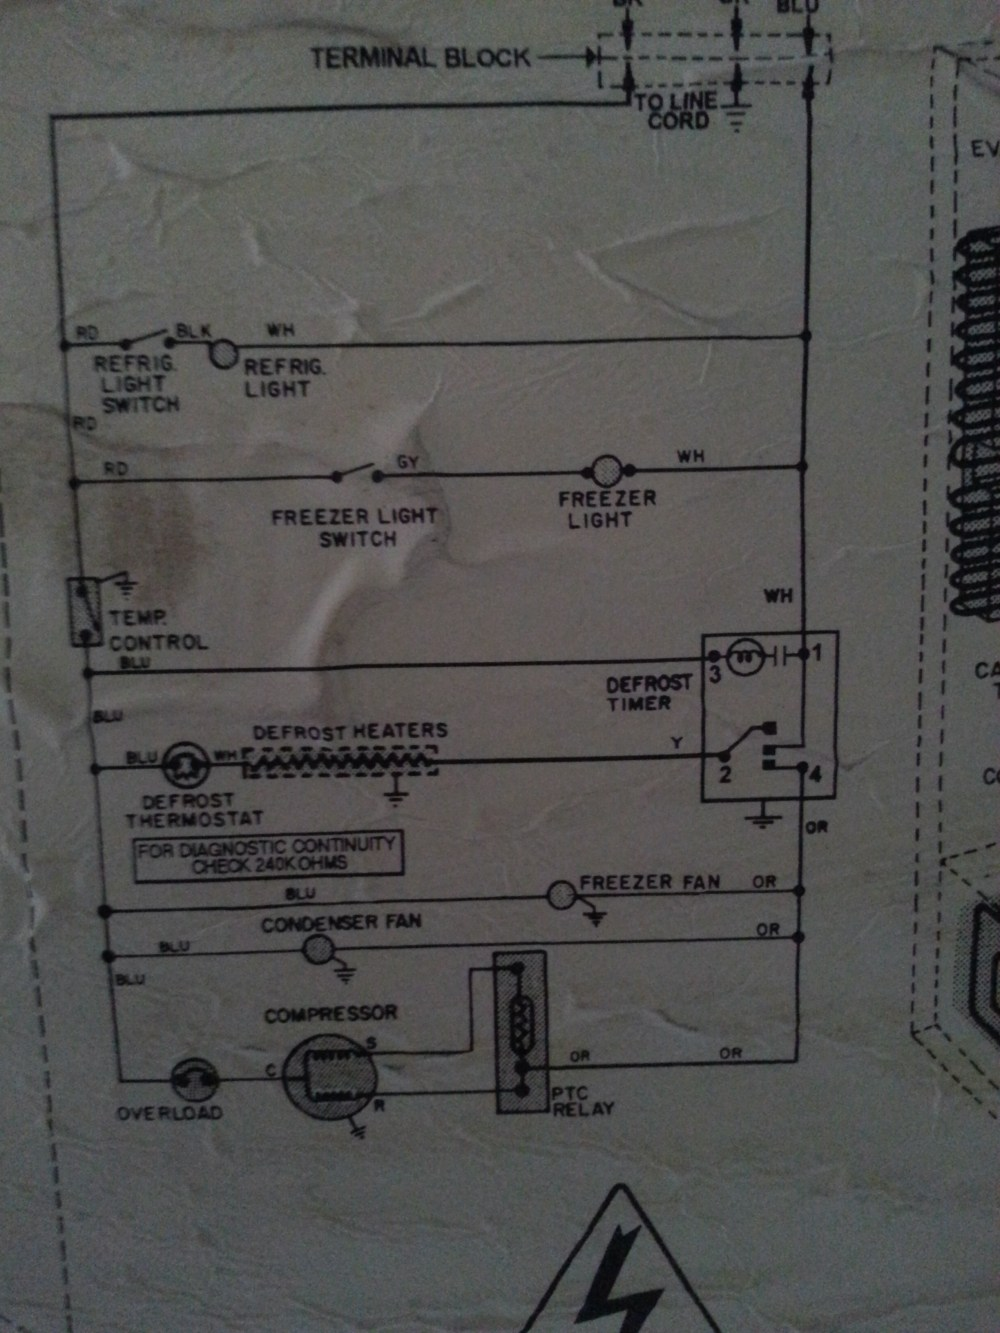 medium resolution of photo of the wiring schematic on the back of the unit